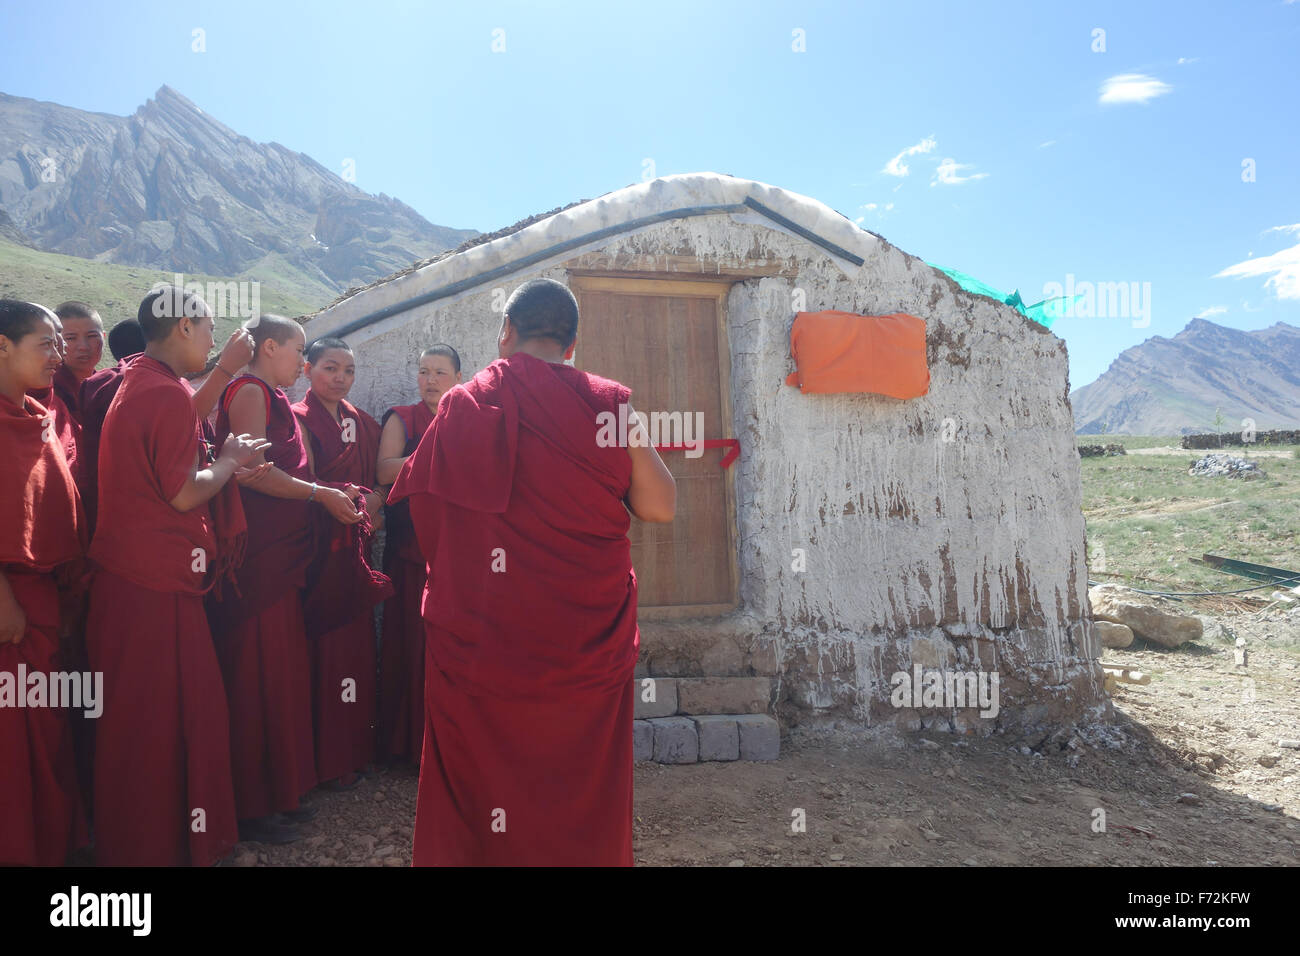 Buddhist nuns at the opening of a new social enterprise/volunteer built greenhouse - Spiti Valley, Indian Himalayas - Stock Image